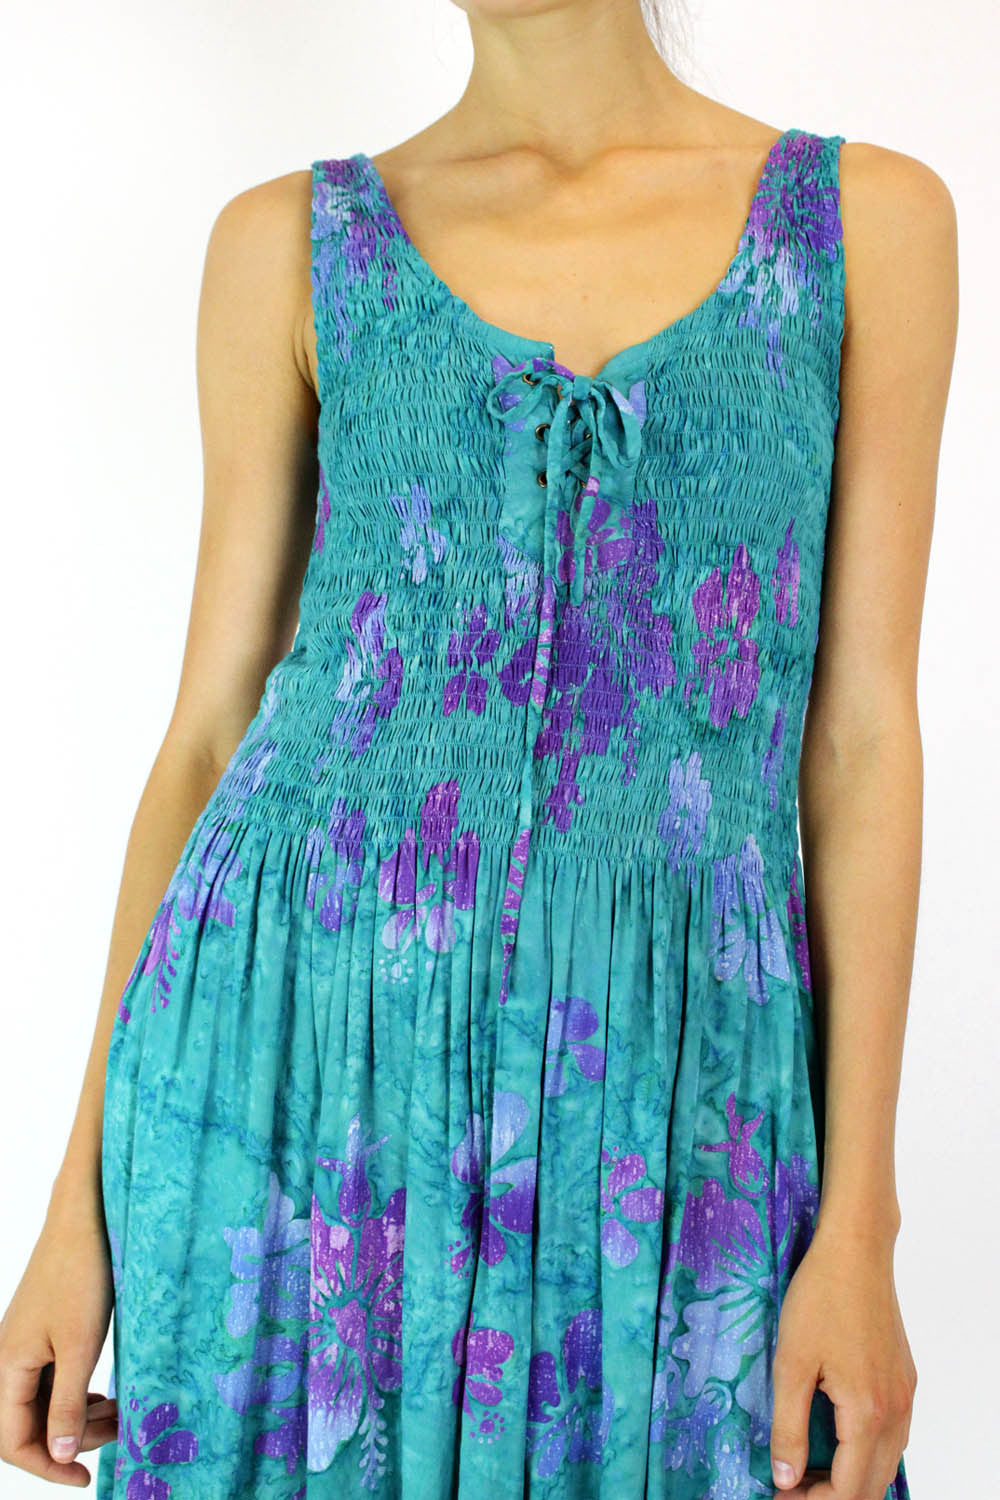 Smocked Batik Sundress S